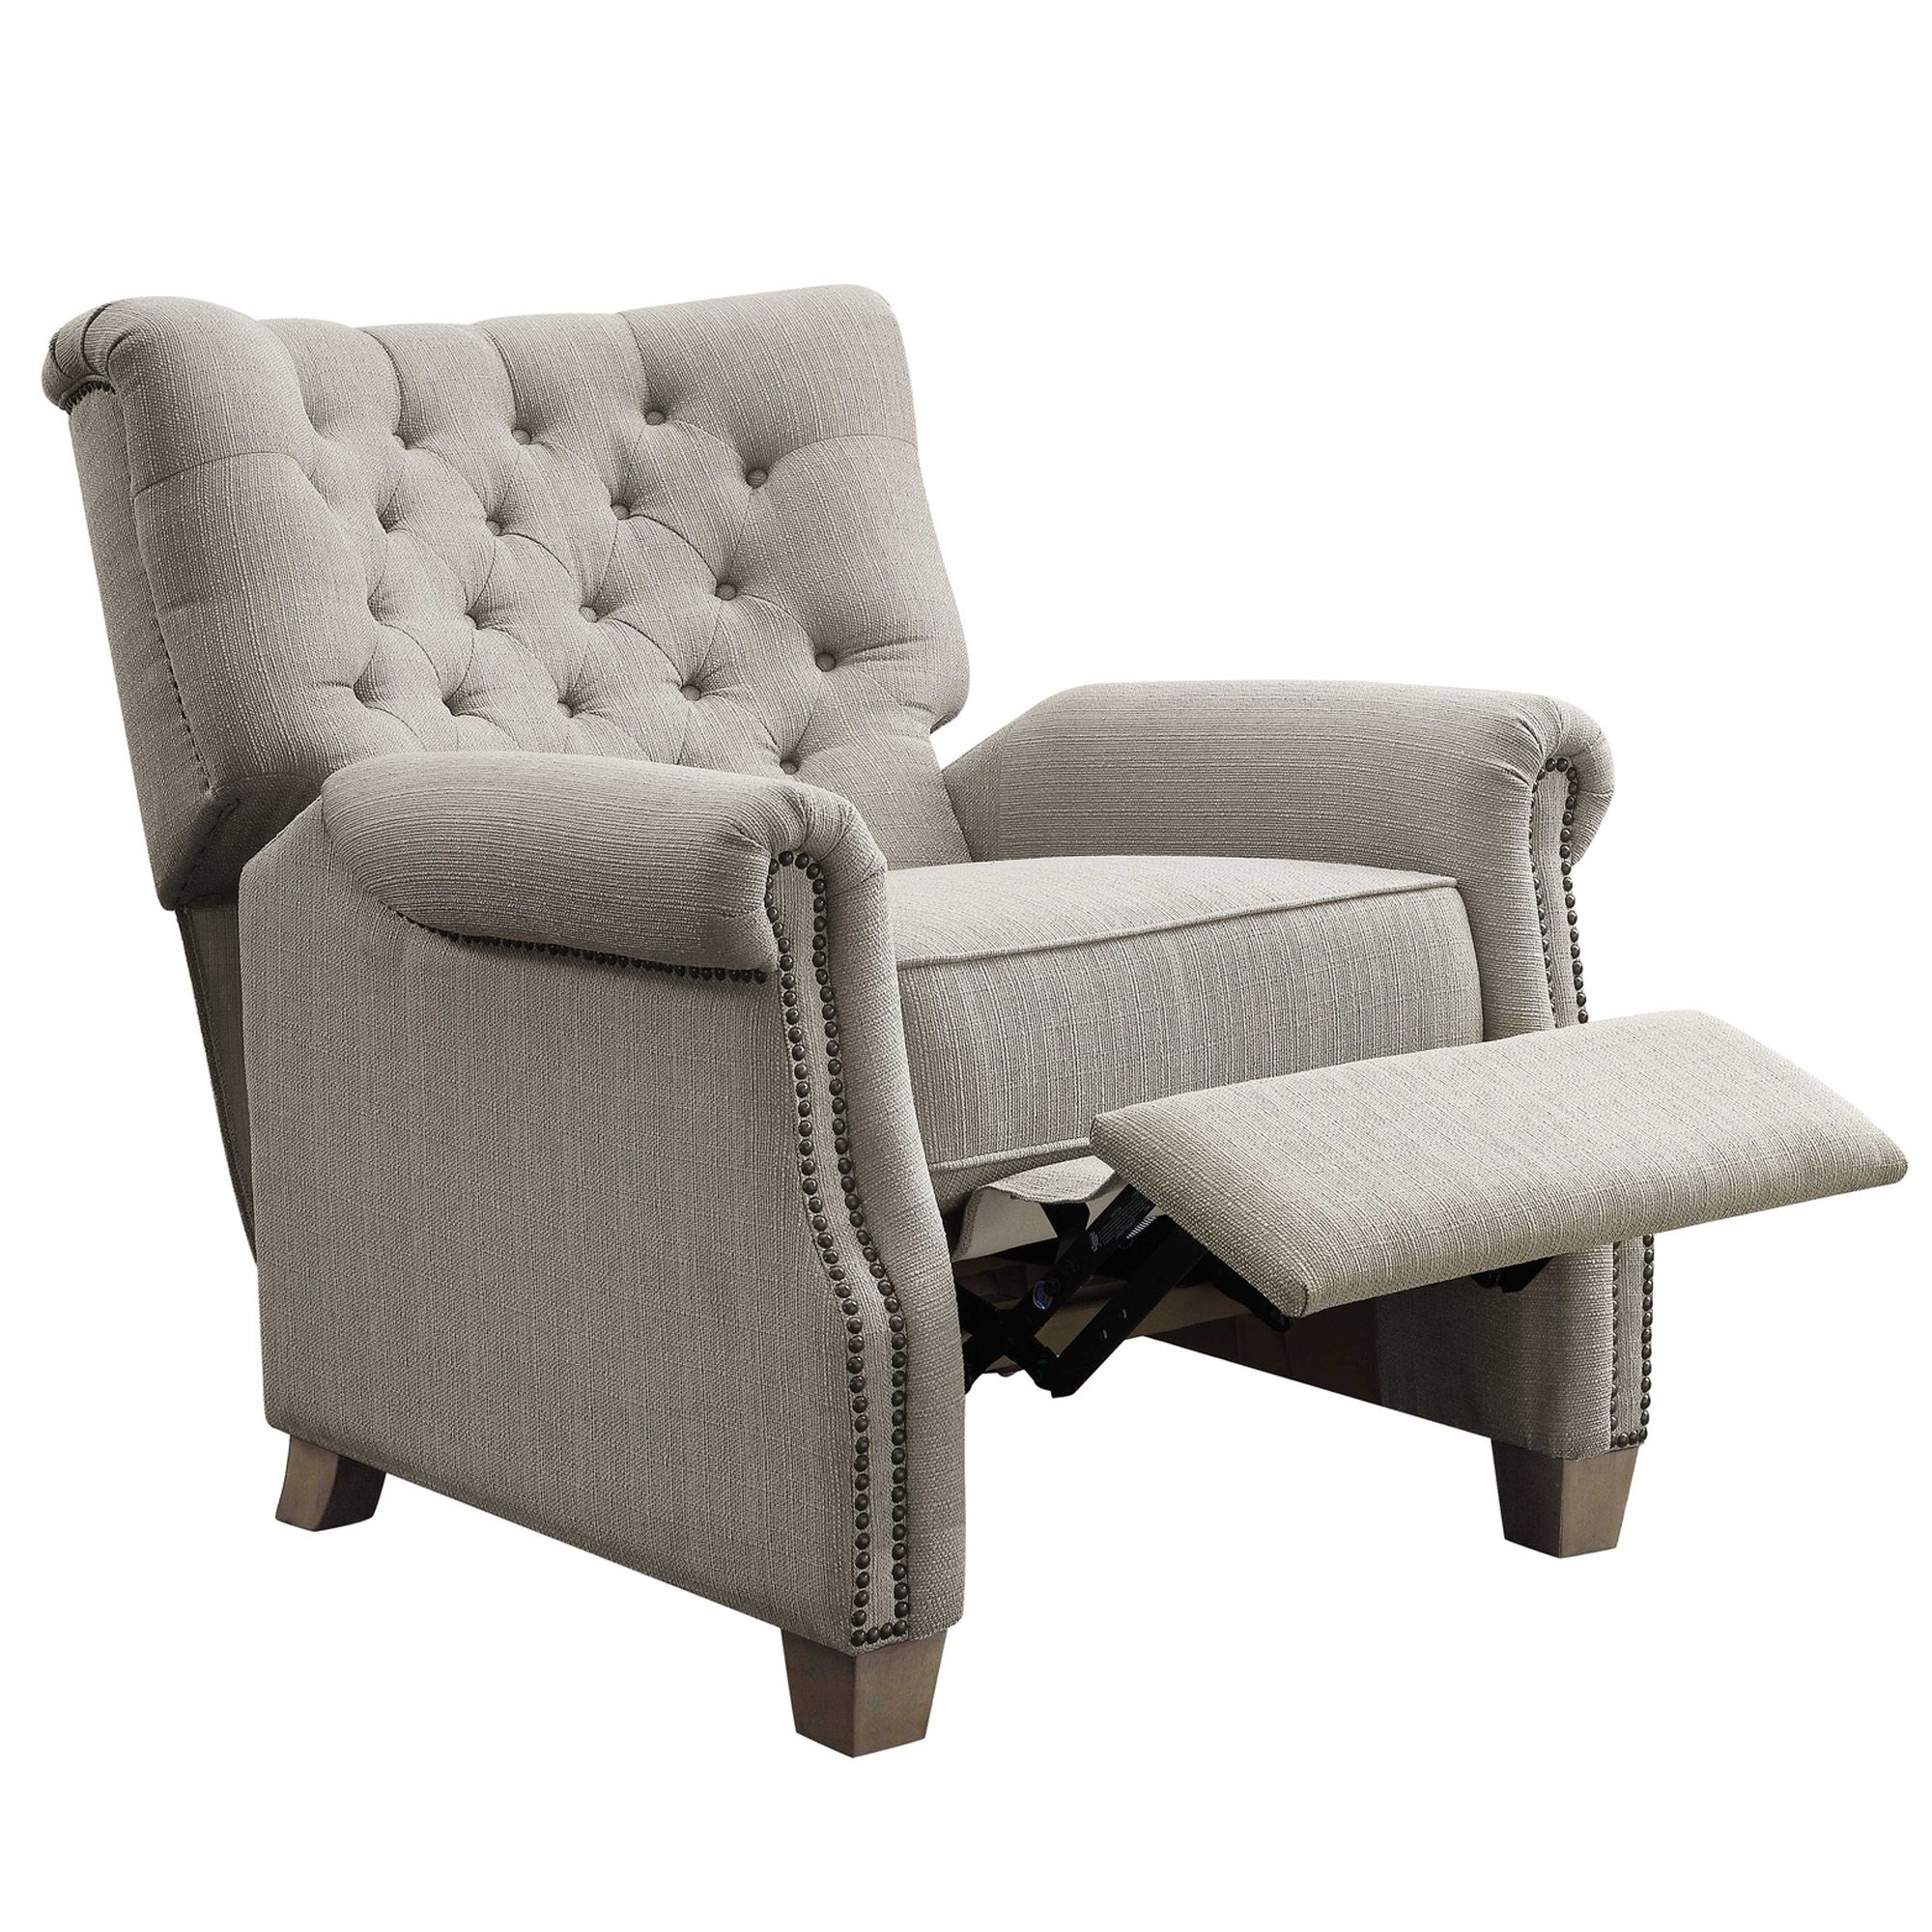 Better homes and garden tufted push back recliner beige